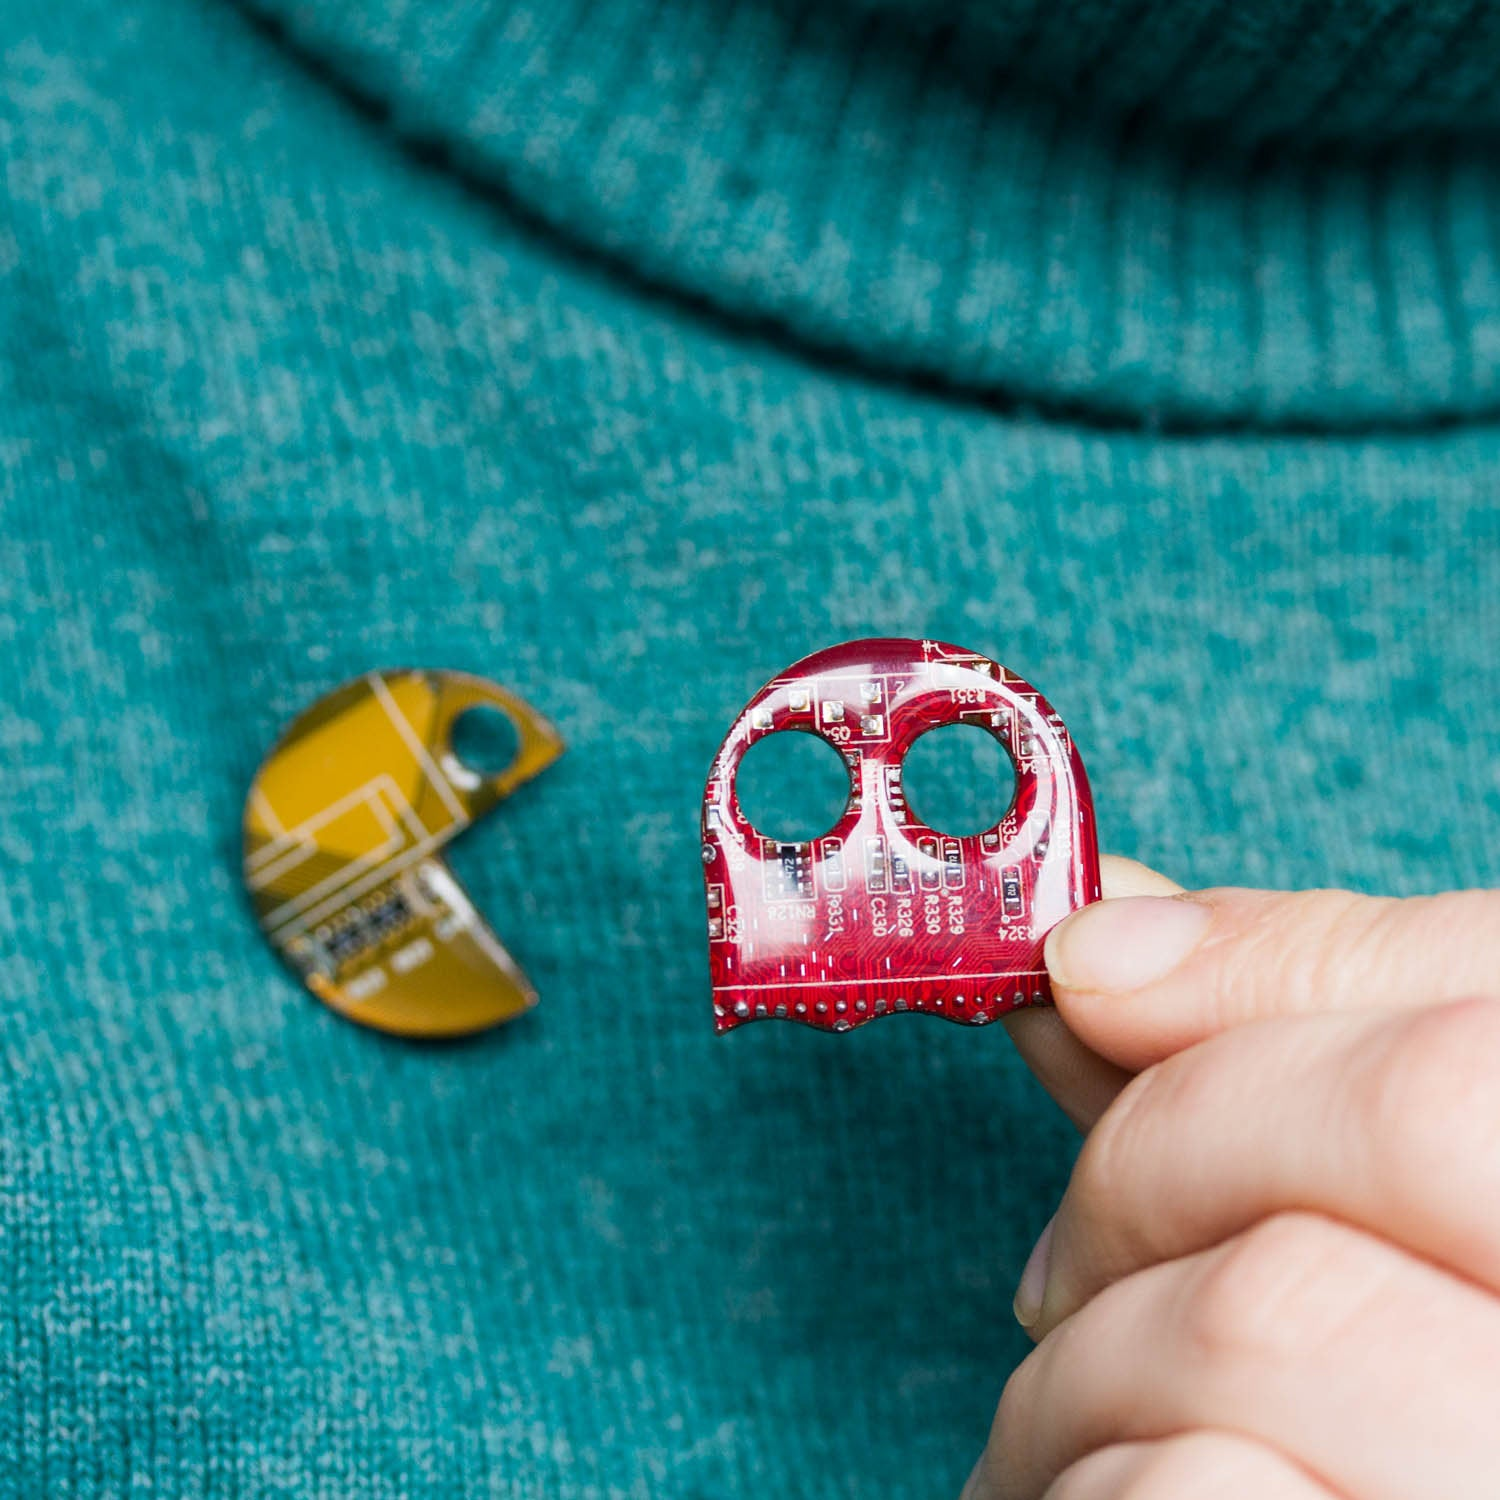 Pacman inspired Pin made with recycled Circuit board